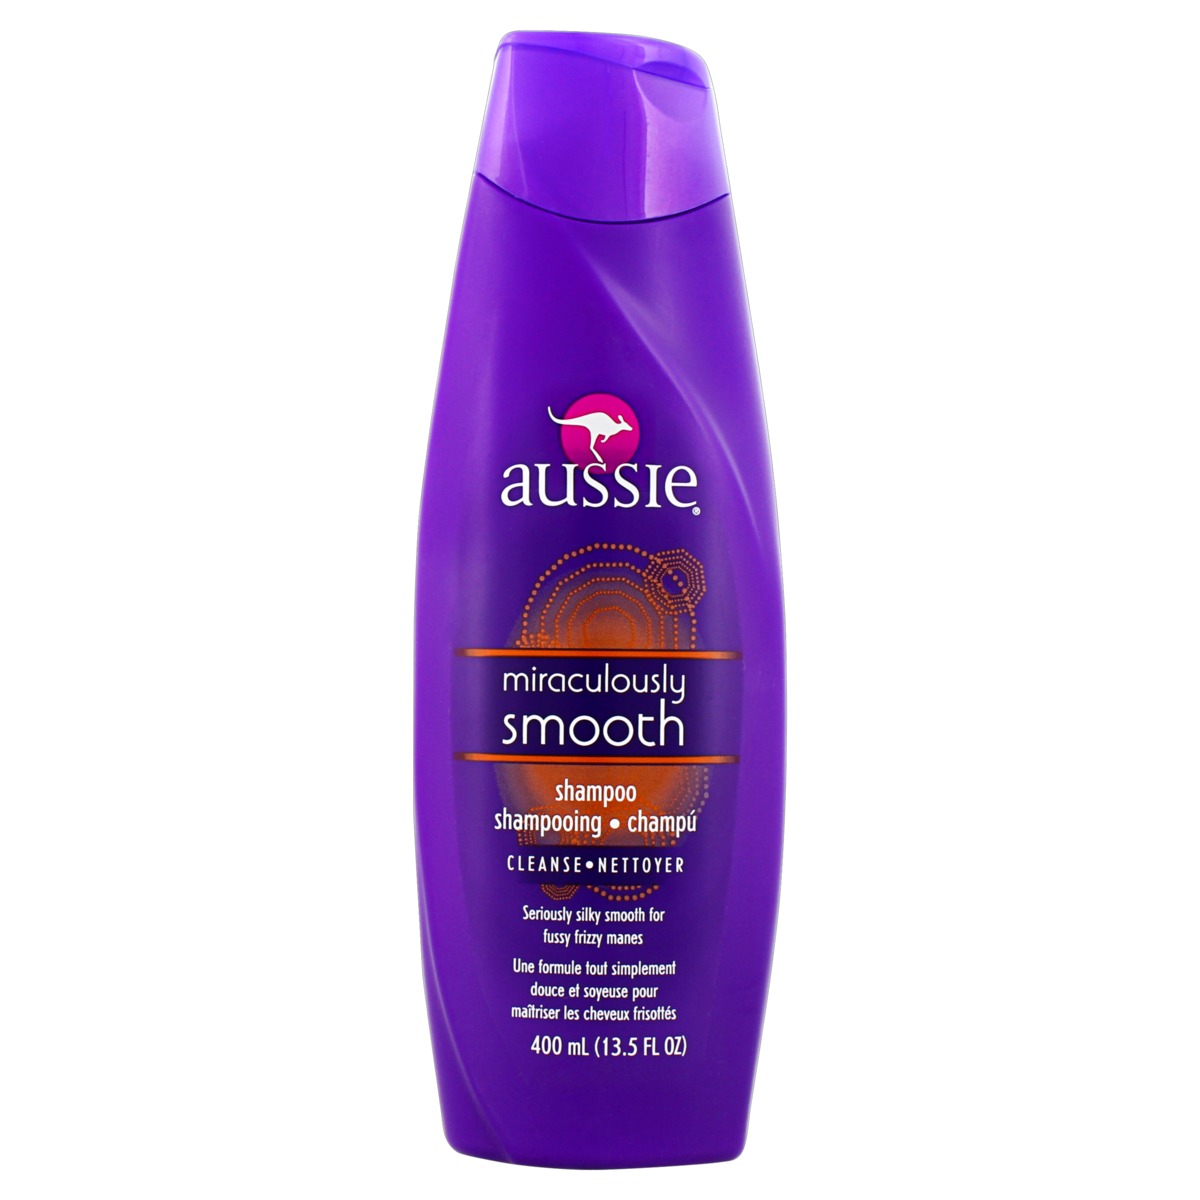 0381519022784 - SHAMPOO MIRACULOUSLY SMOOTH AUSSIE FRASCO 400ML